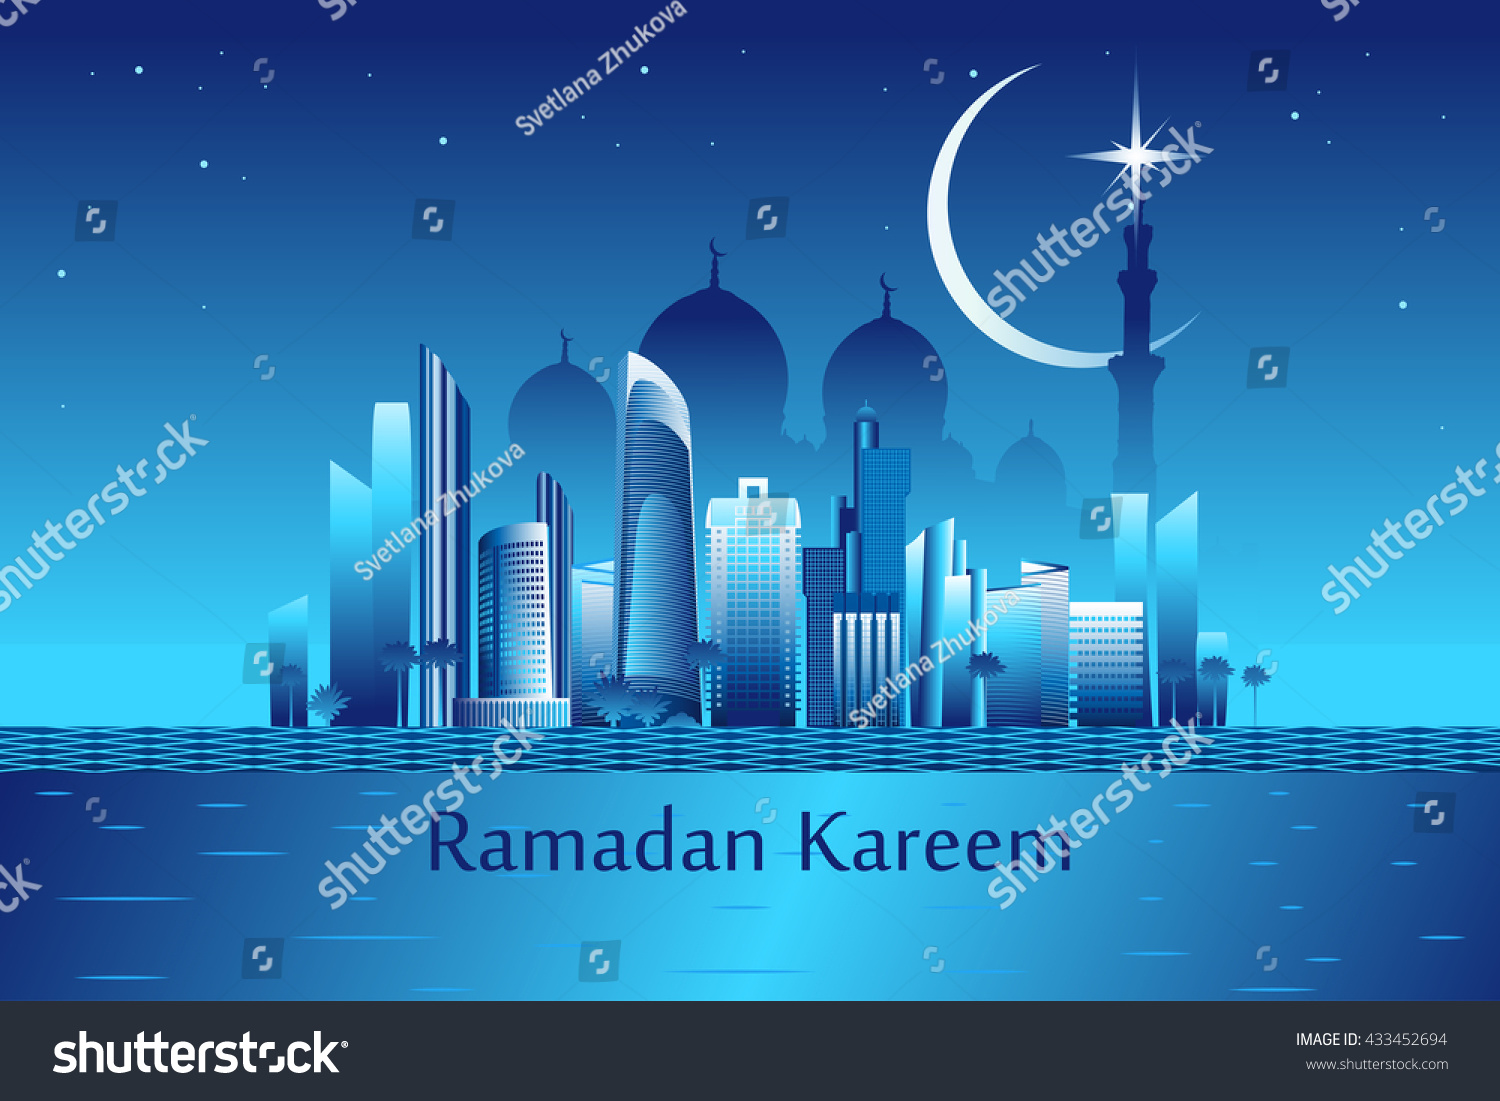 Ramadan Kareem Meaning Ramadan Generous Message Stock Vector